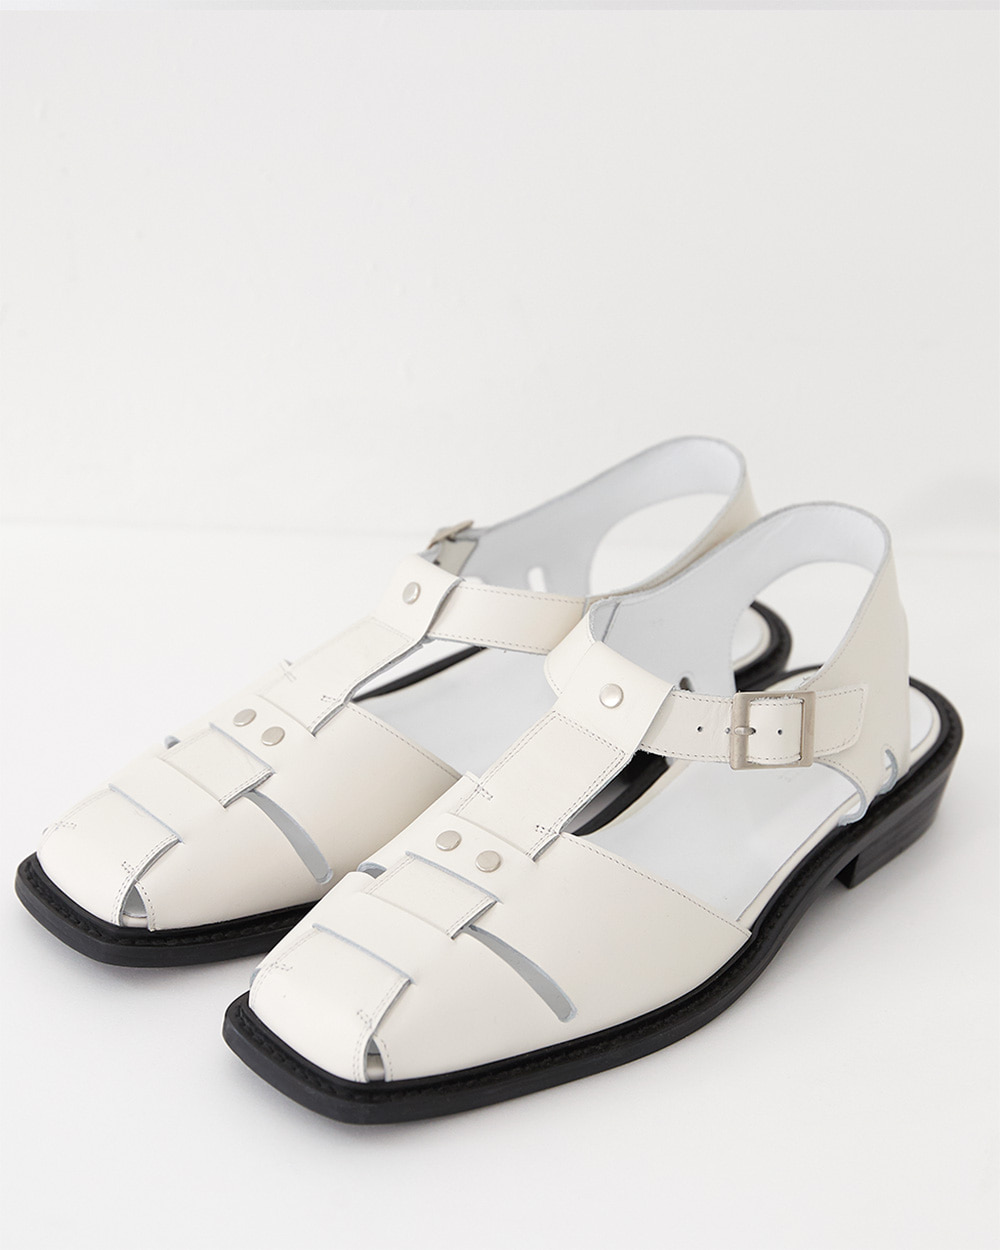 HALEINE알렌느 CREAM fisherman sandal(NH002)